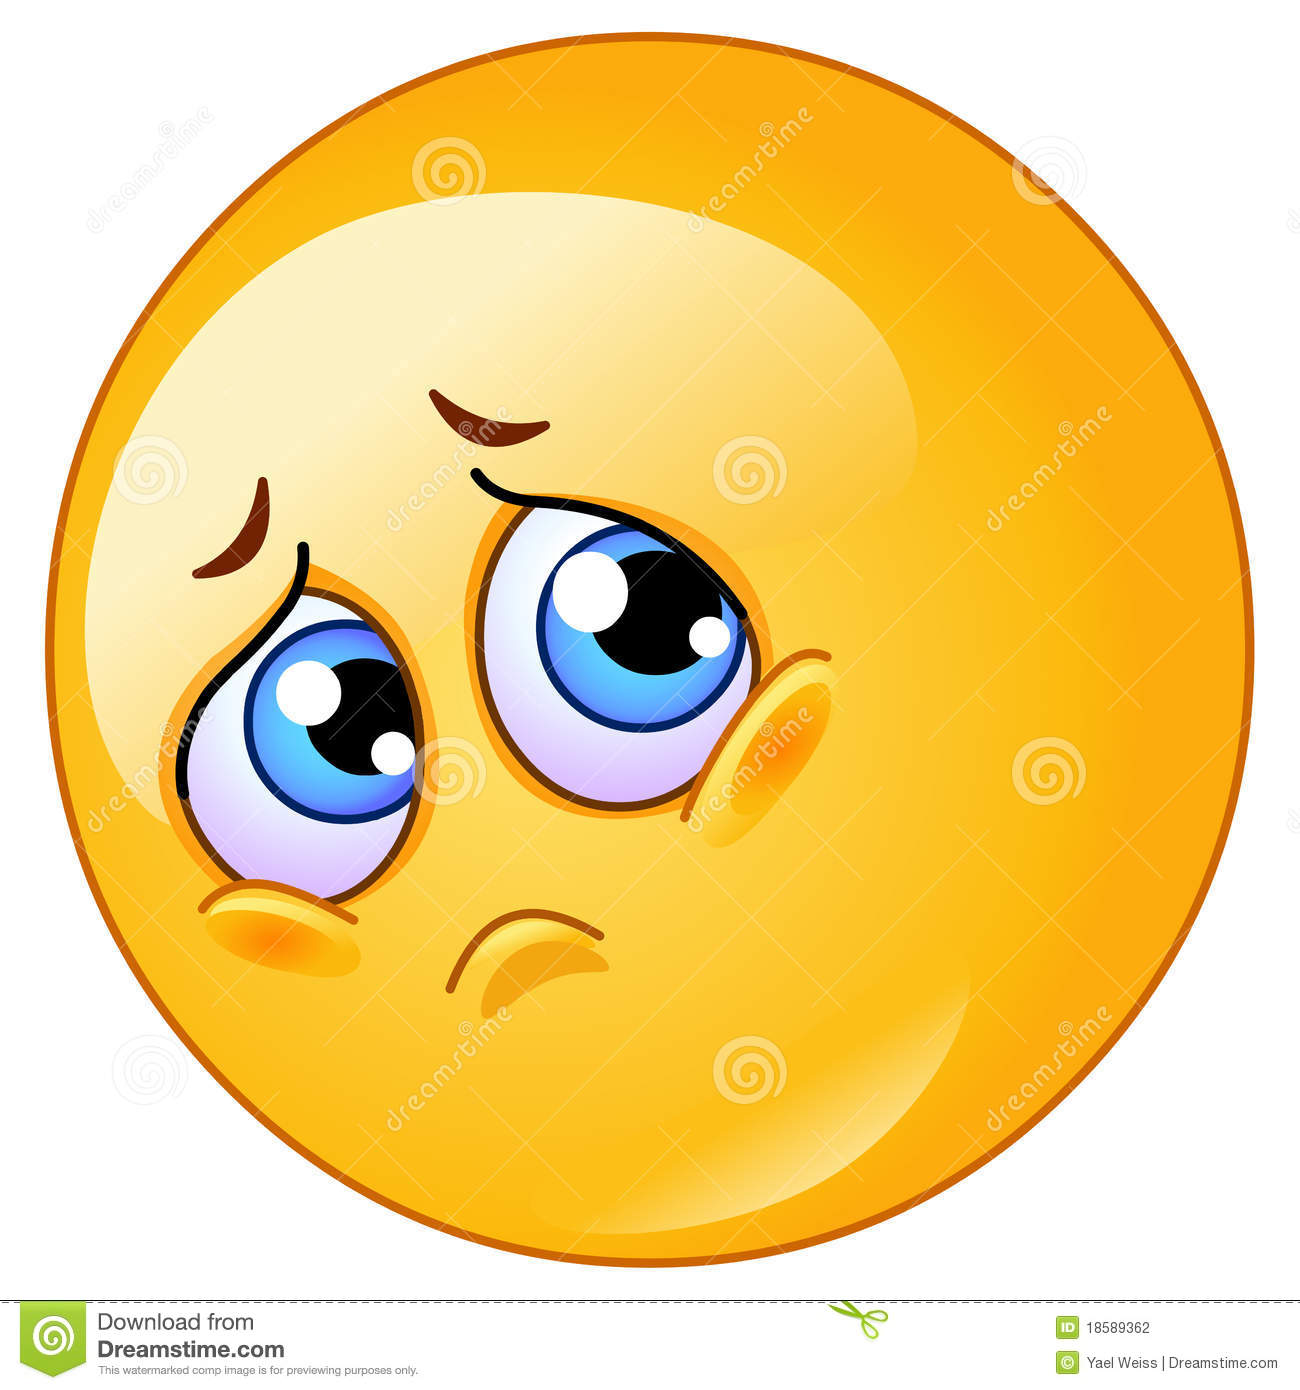 Emotional clipart unhappy person Emoticon 59 Million Stock Sad